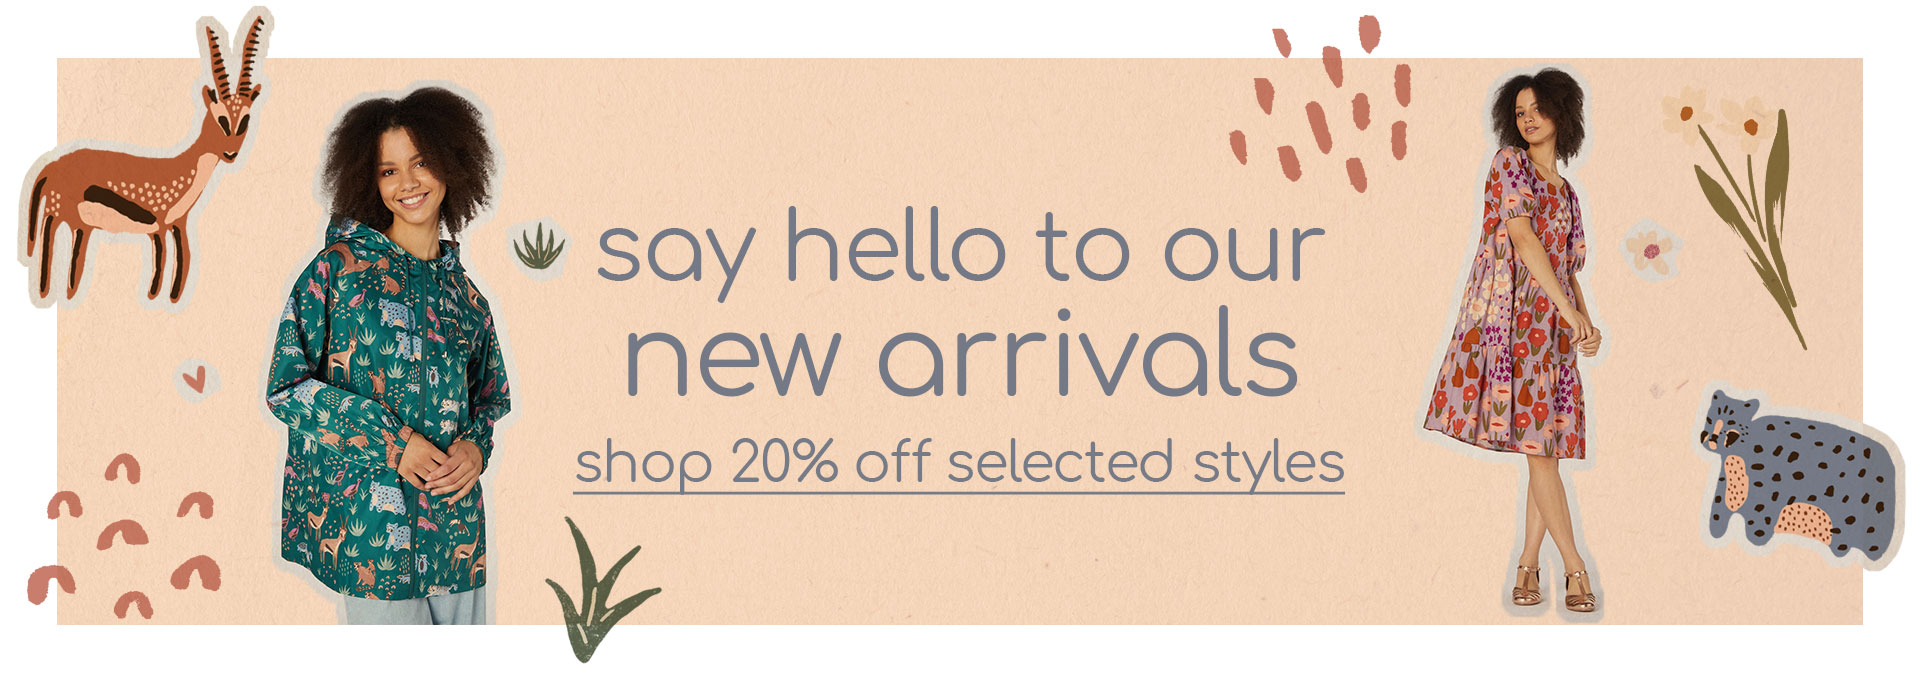 Say hello to our new arrivals